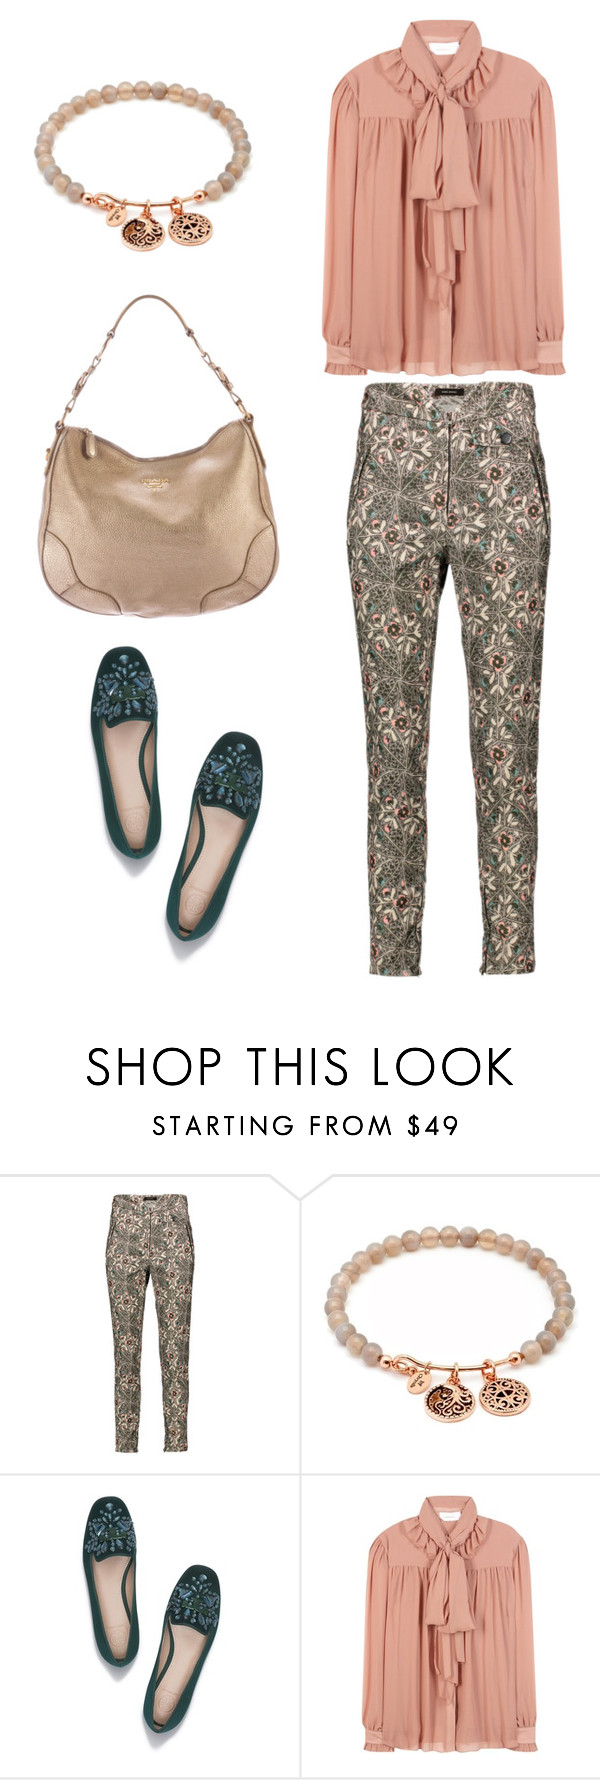 """""""HW SR-2"""" by tanya-liljenfeldt on Polyvore featuring Isabel Marant, Chrysalis, Tory Burch, See by Chloé and Prada"""